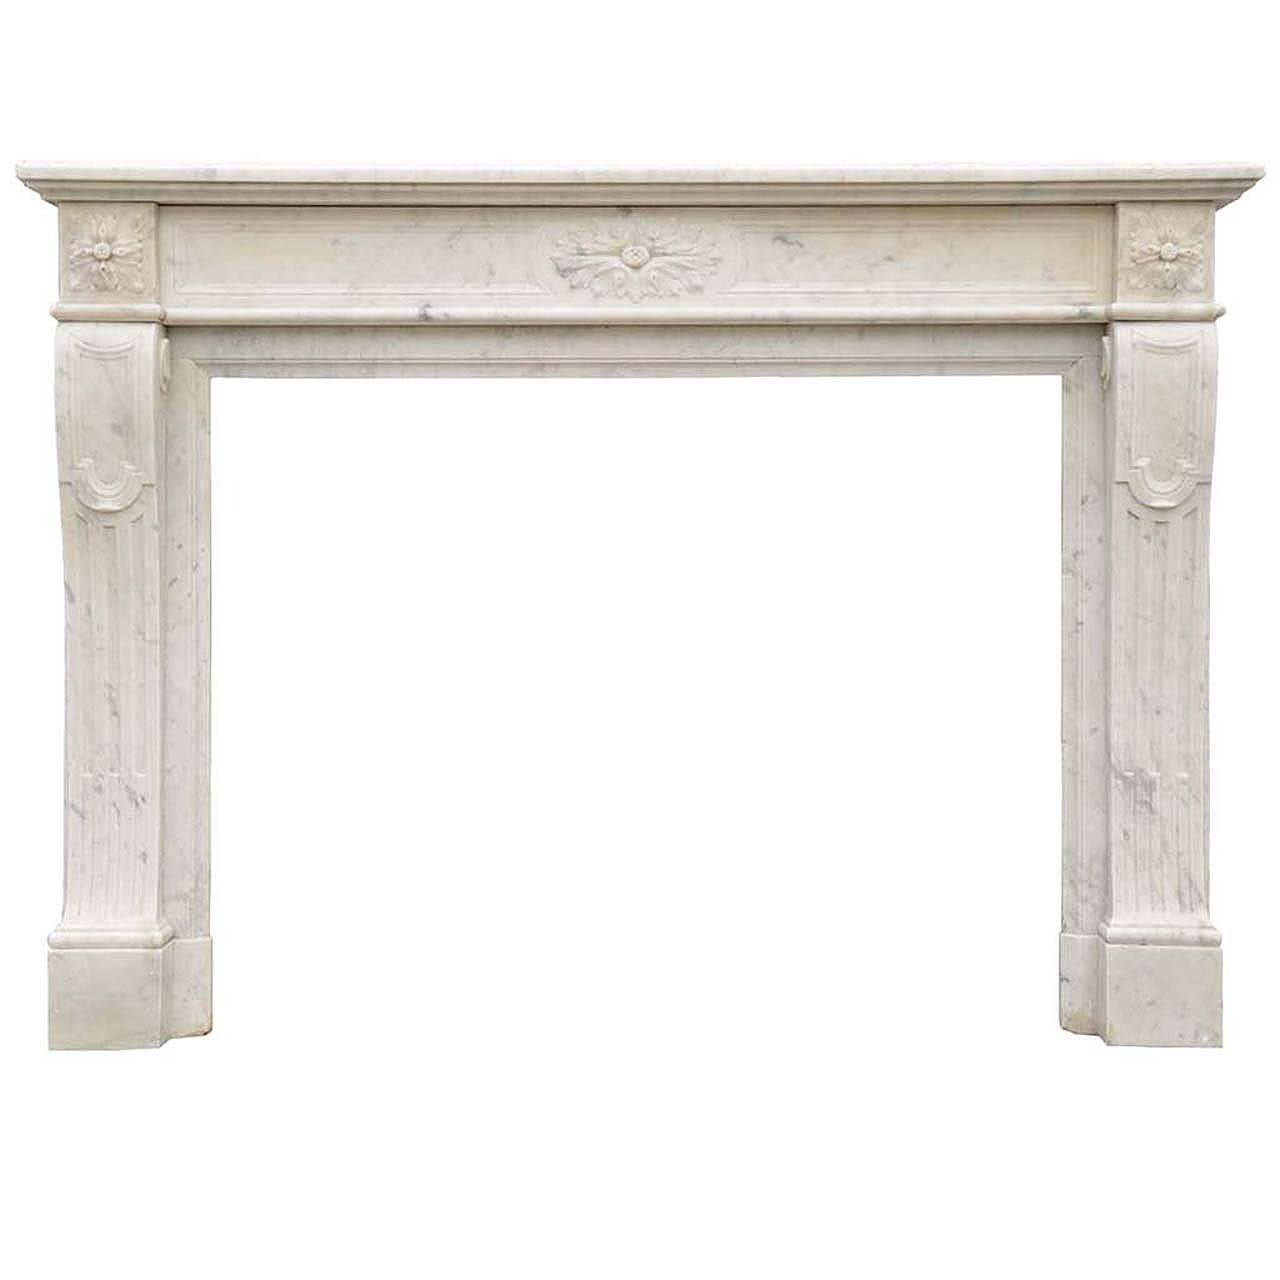 French Louis XVI Style White Marble Fireplace, 19th Century.